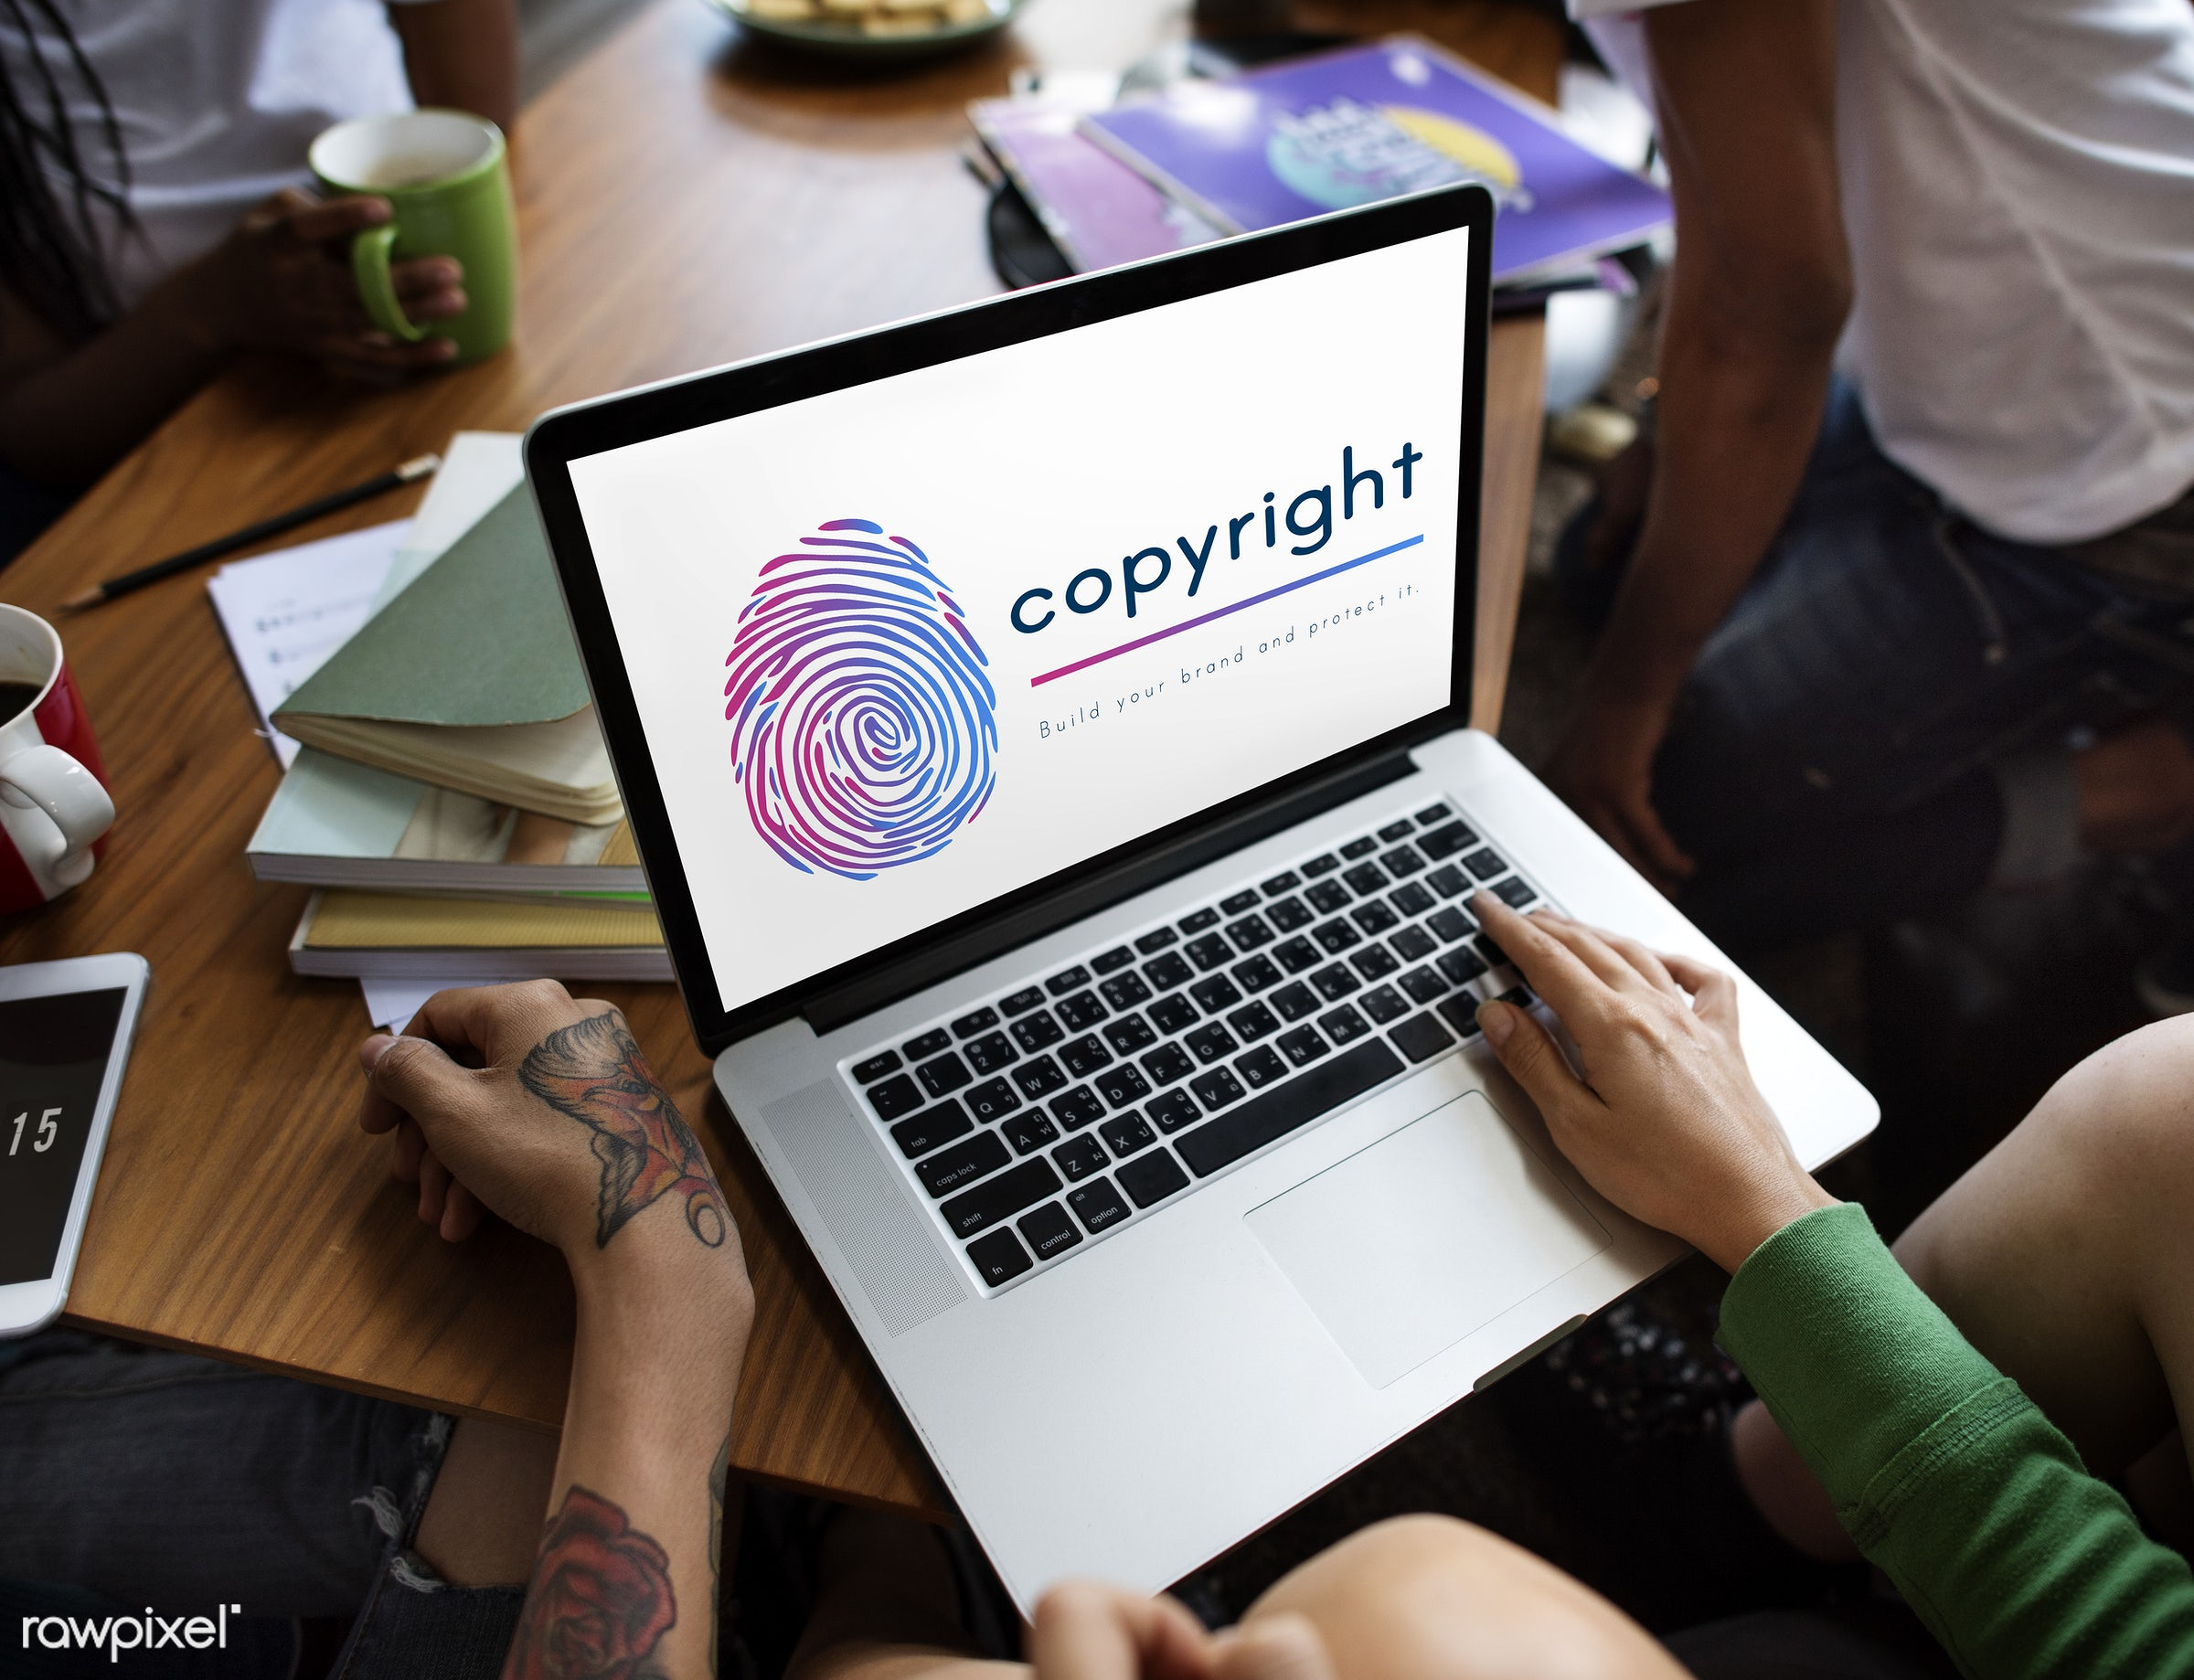 copyright, branding, african descent, asian, brand, brand name, business, caucasian, commercial, corporate, design,...